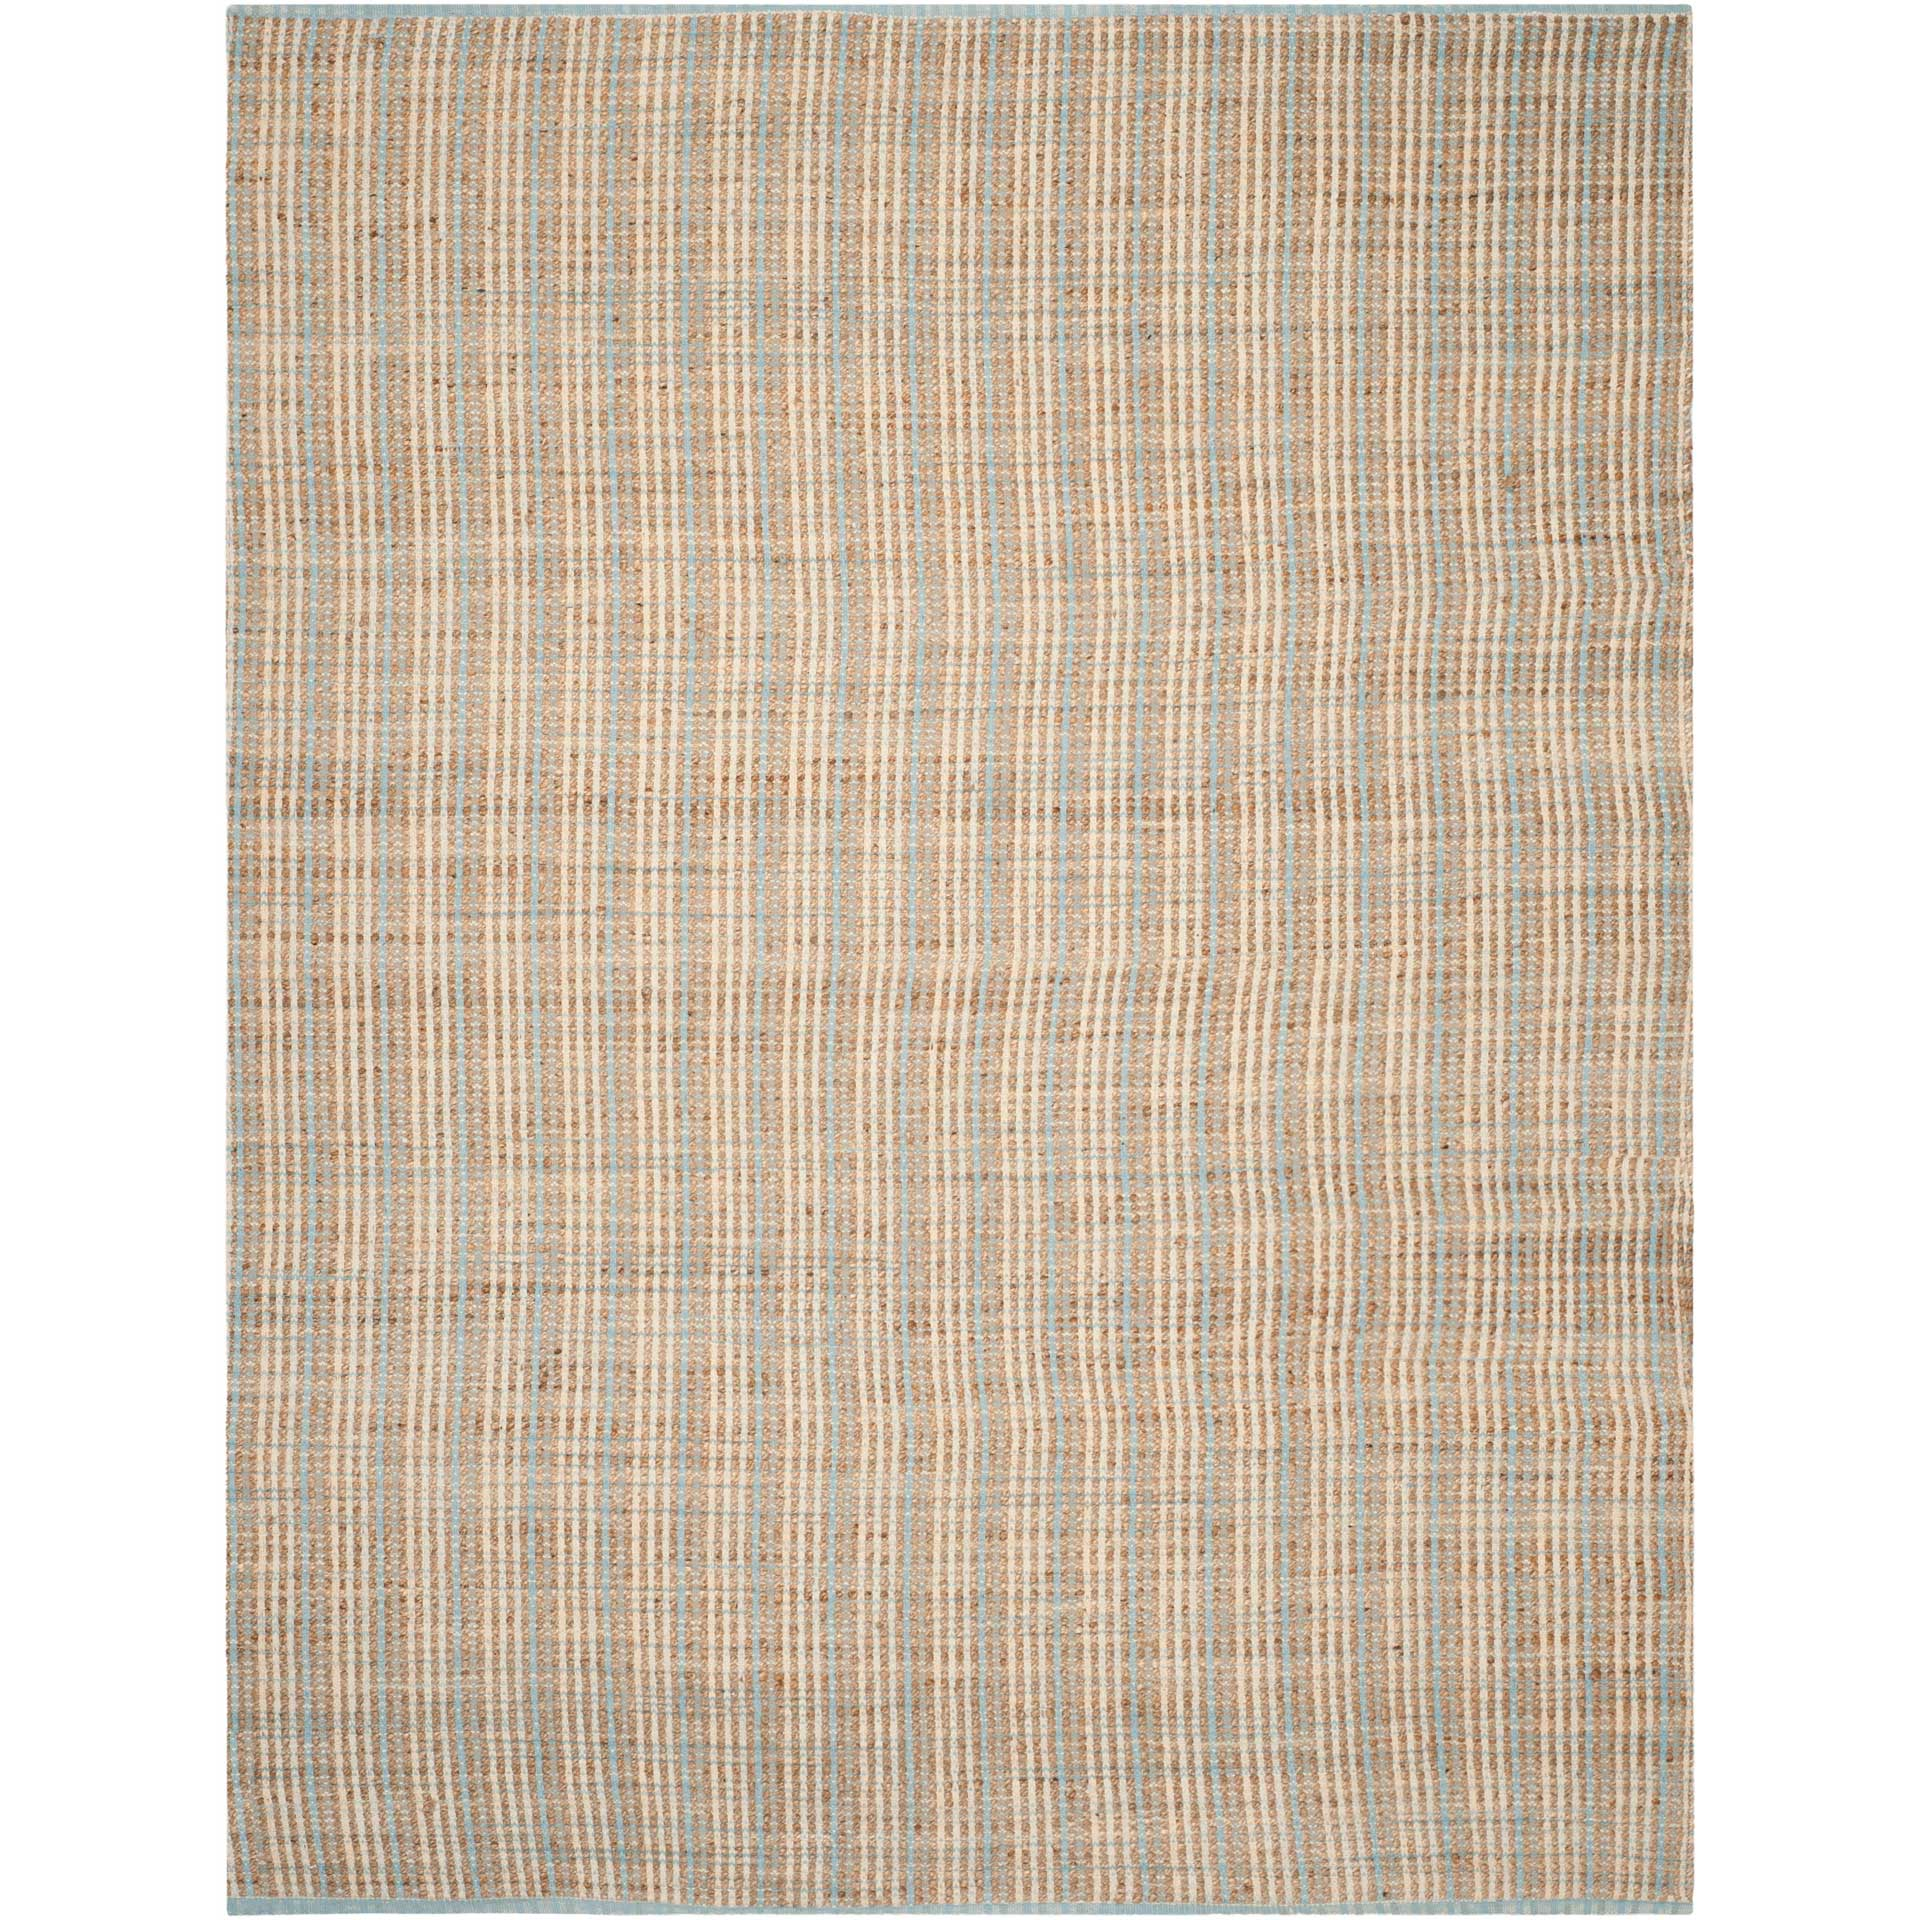 Cape Cod Natural/Light Blue Area Rug